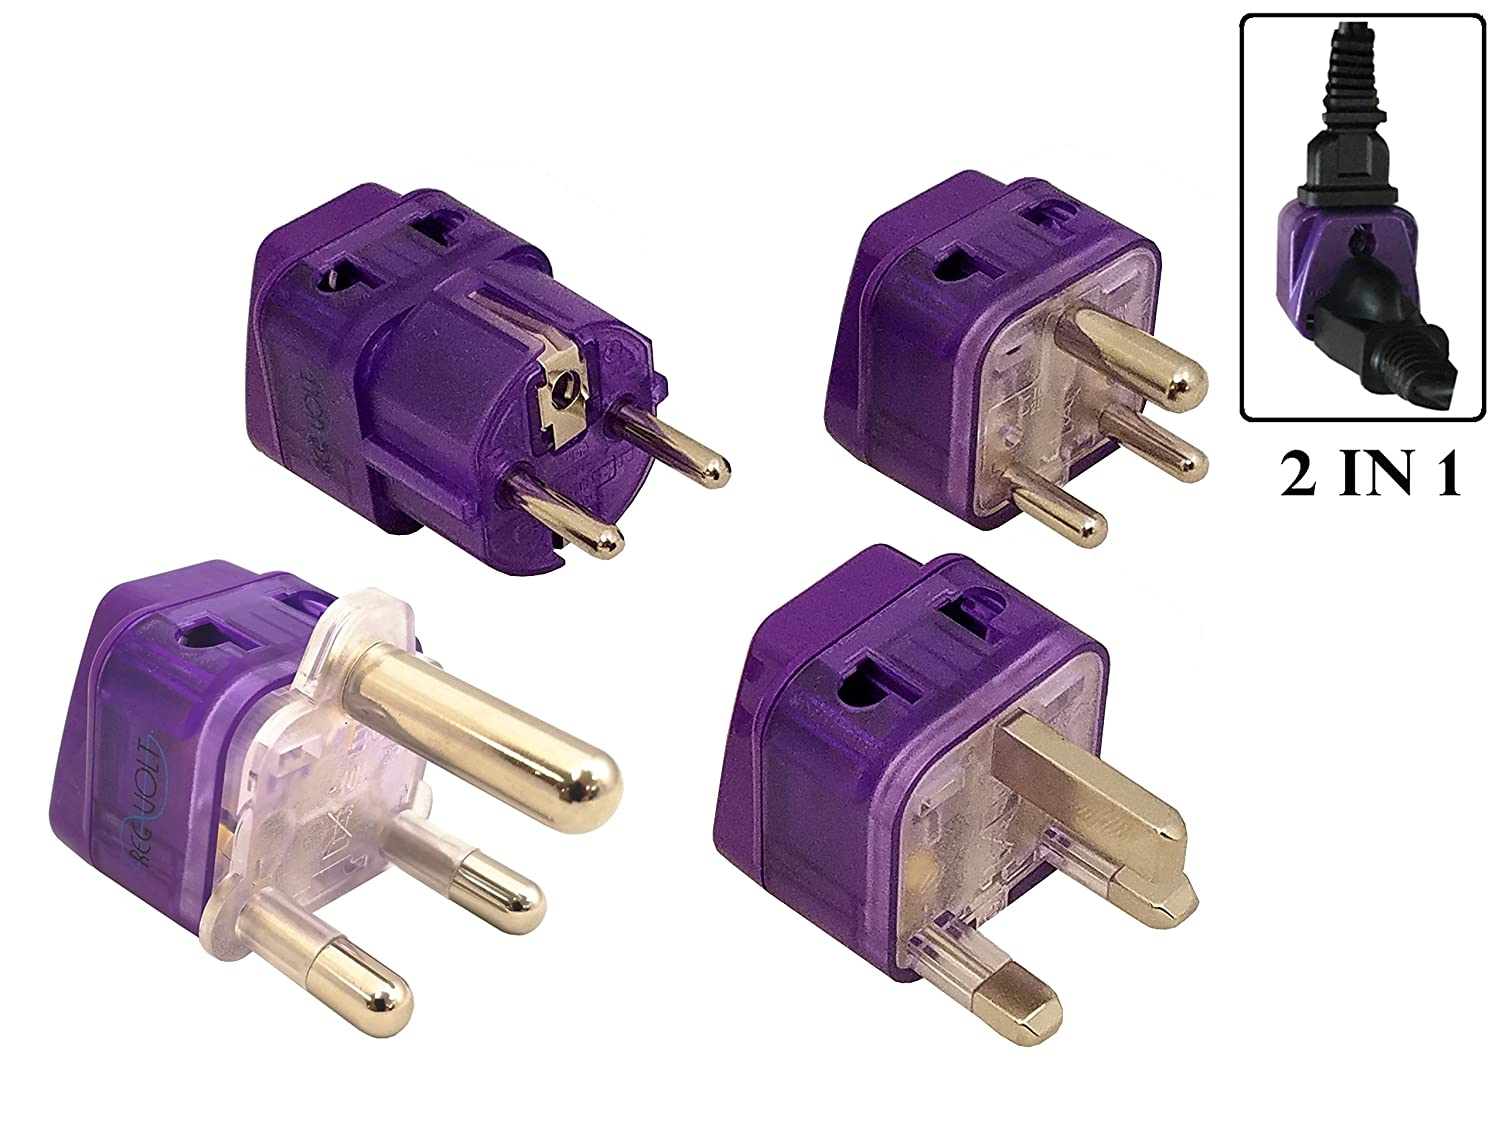 REGVOLT Grounded 2 in 1 Travel Plug Adapter Kit for South Africa, Africa, Europe, Asia, South America, India, Slovakia, Spain, Sweden, Estonia, Morocco and More